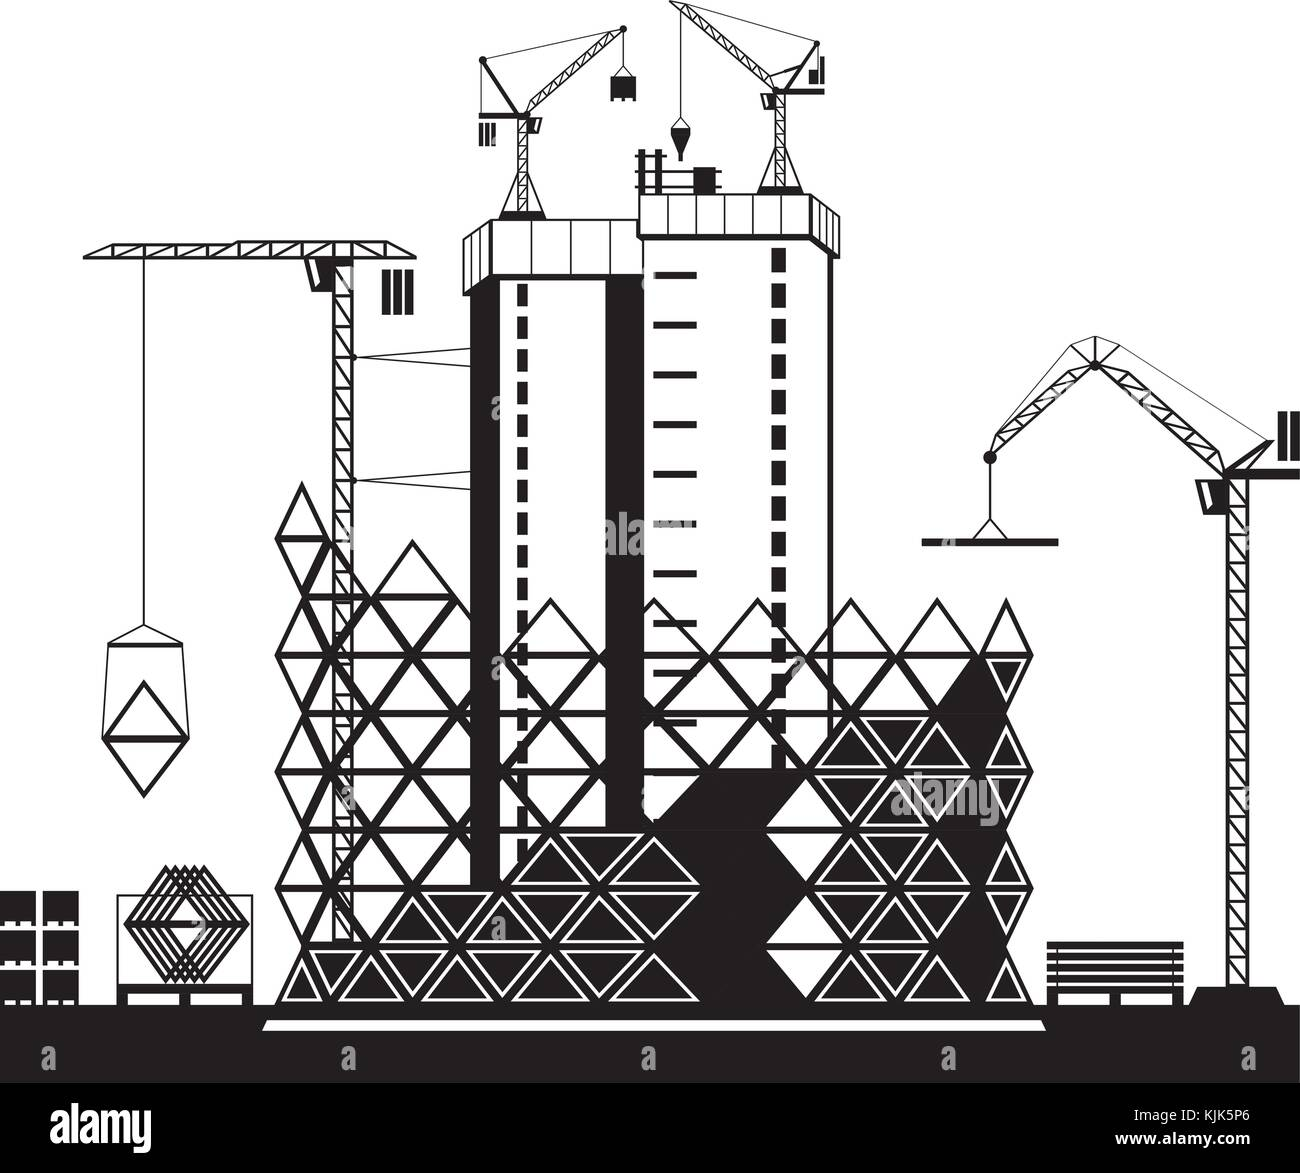 Construction of high rise buildings - vector illustration - Stock Vector